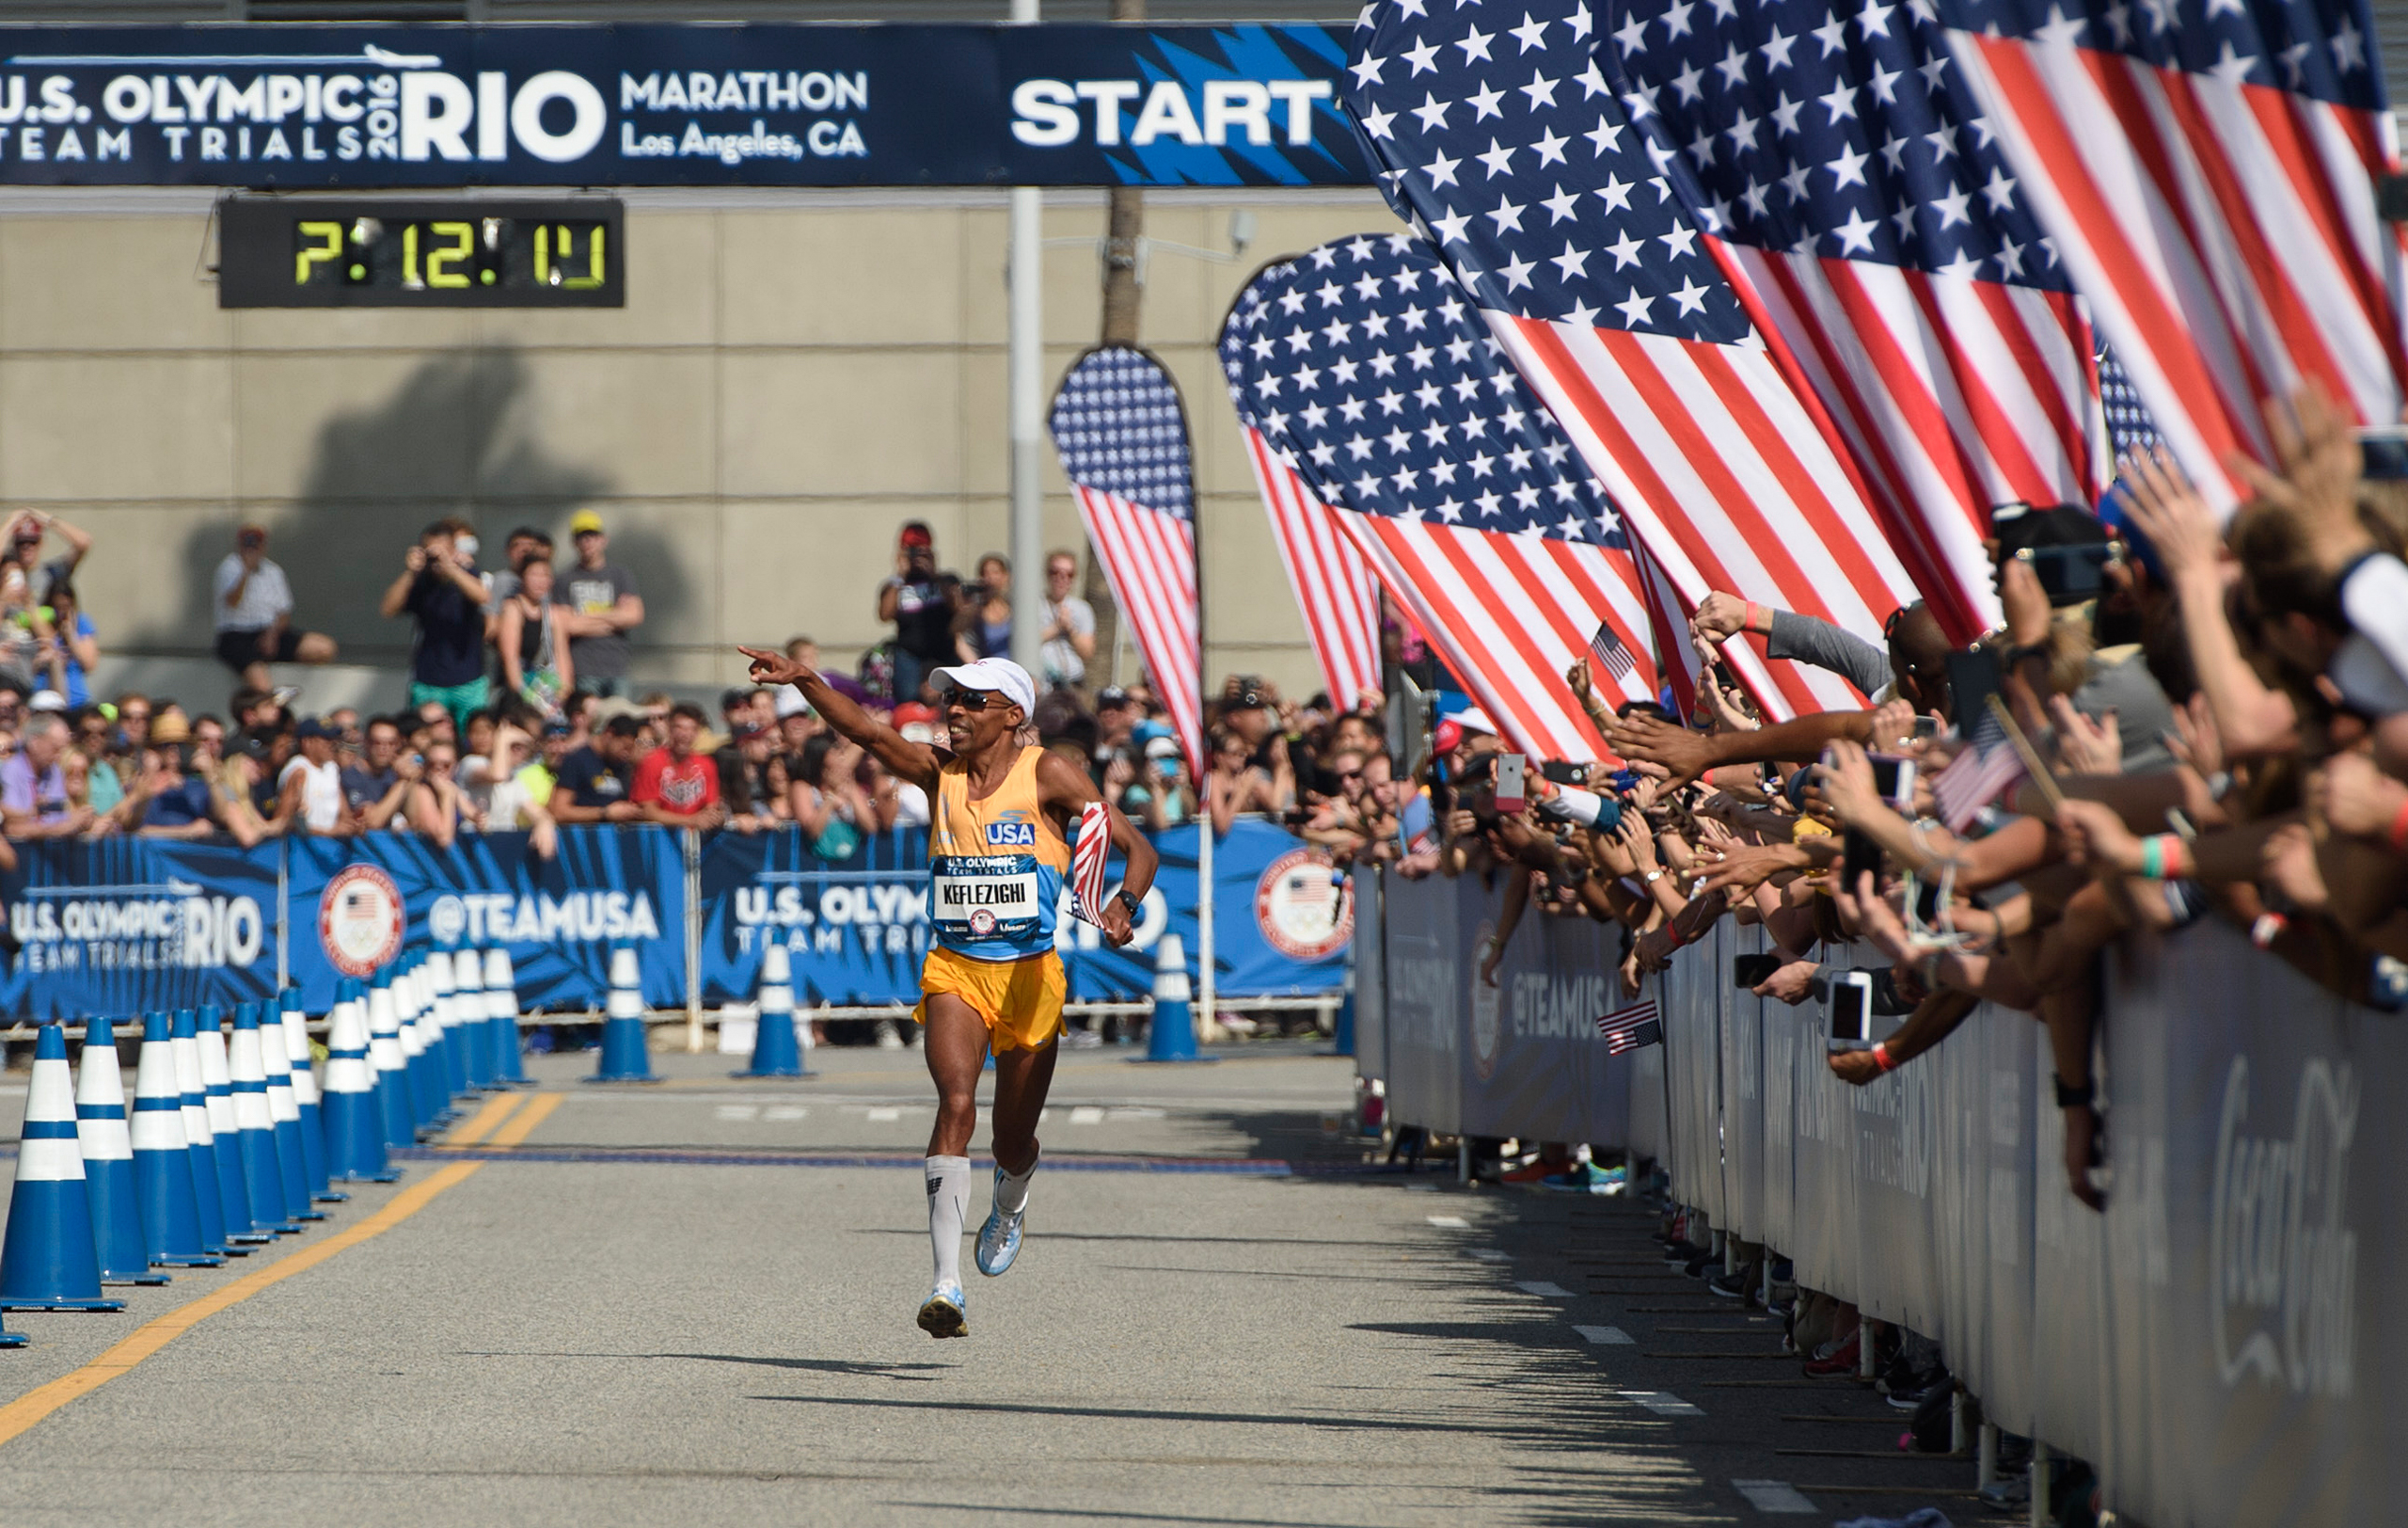 <strong>Meb Keflezighi, Track and Field, USA</strong>The ageless Keflezighi, who won the first Boston Marathon after the 2013 bombings, will be a sentimental favorite in the Rio marathon.